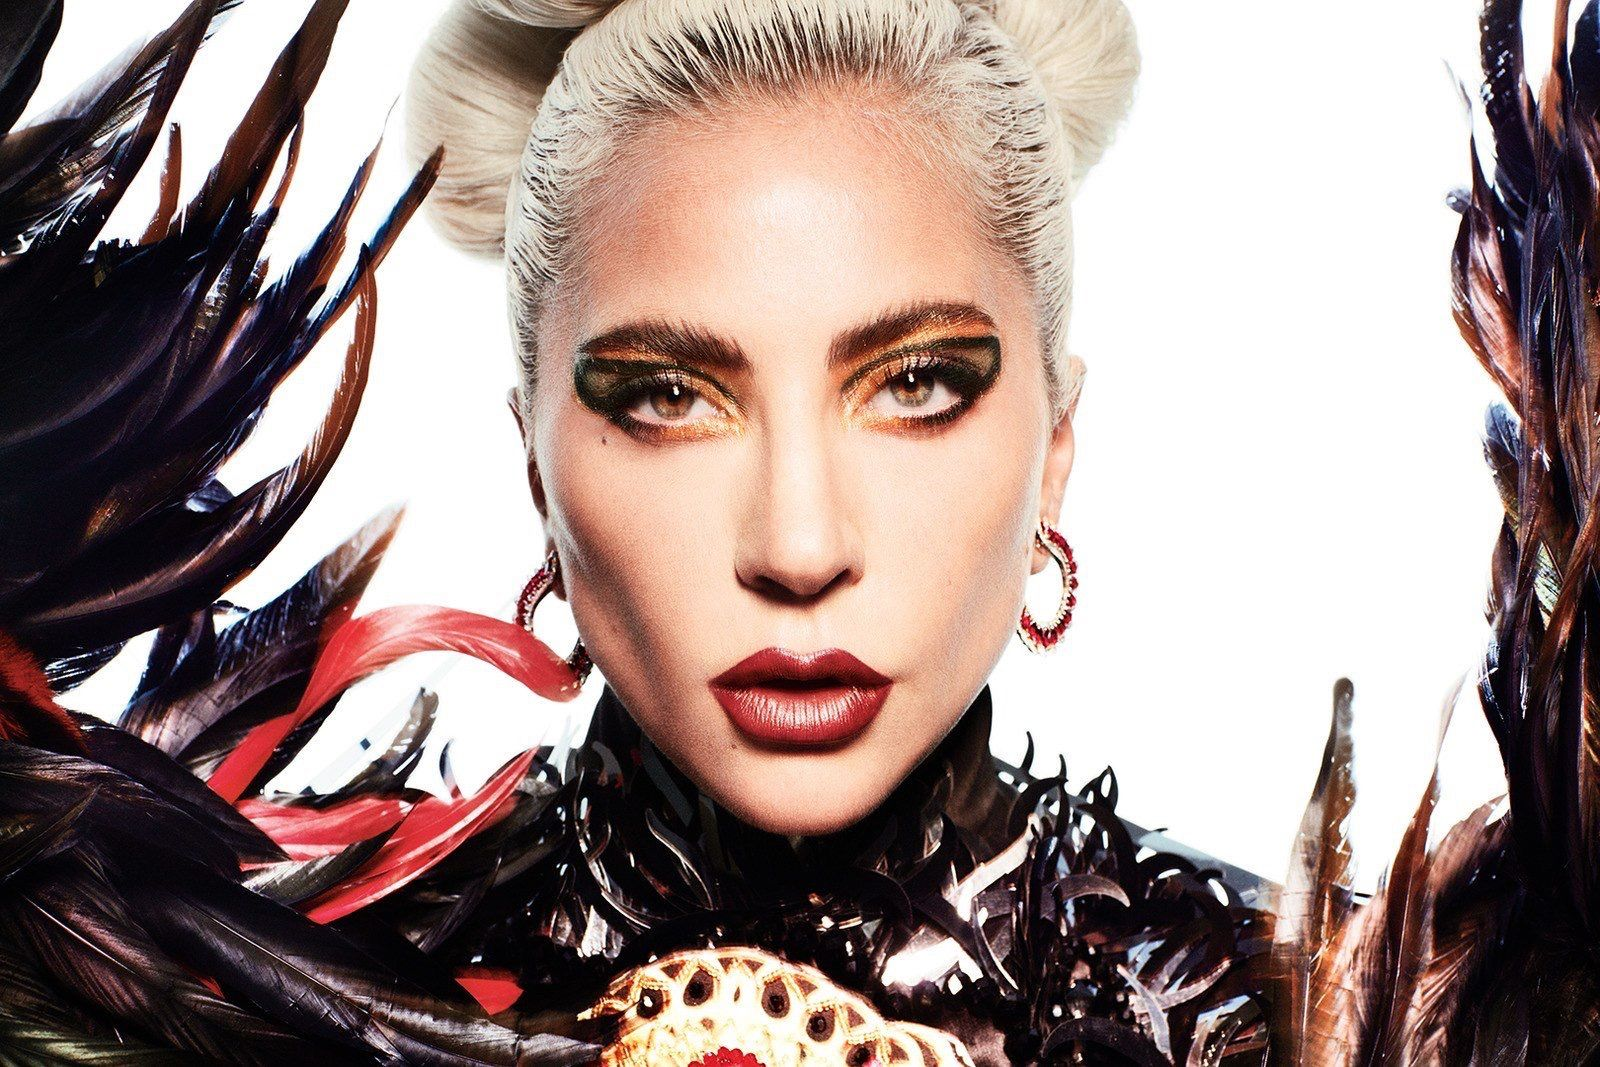 Lady Gaga 4 Germanotta American Singer Poster Pop Music Star Photo Beauty Lady